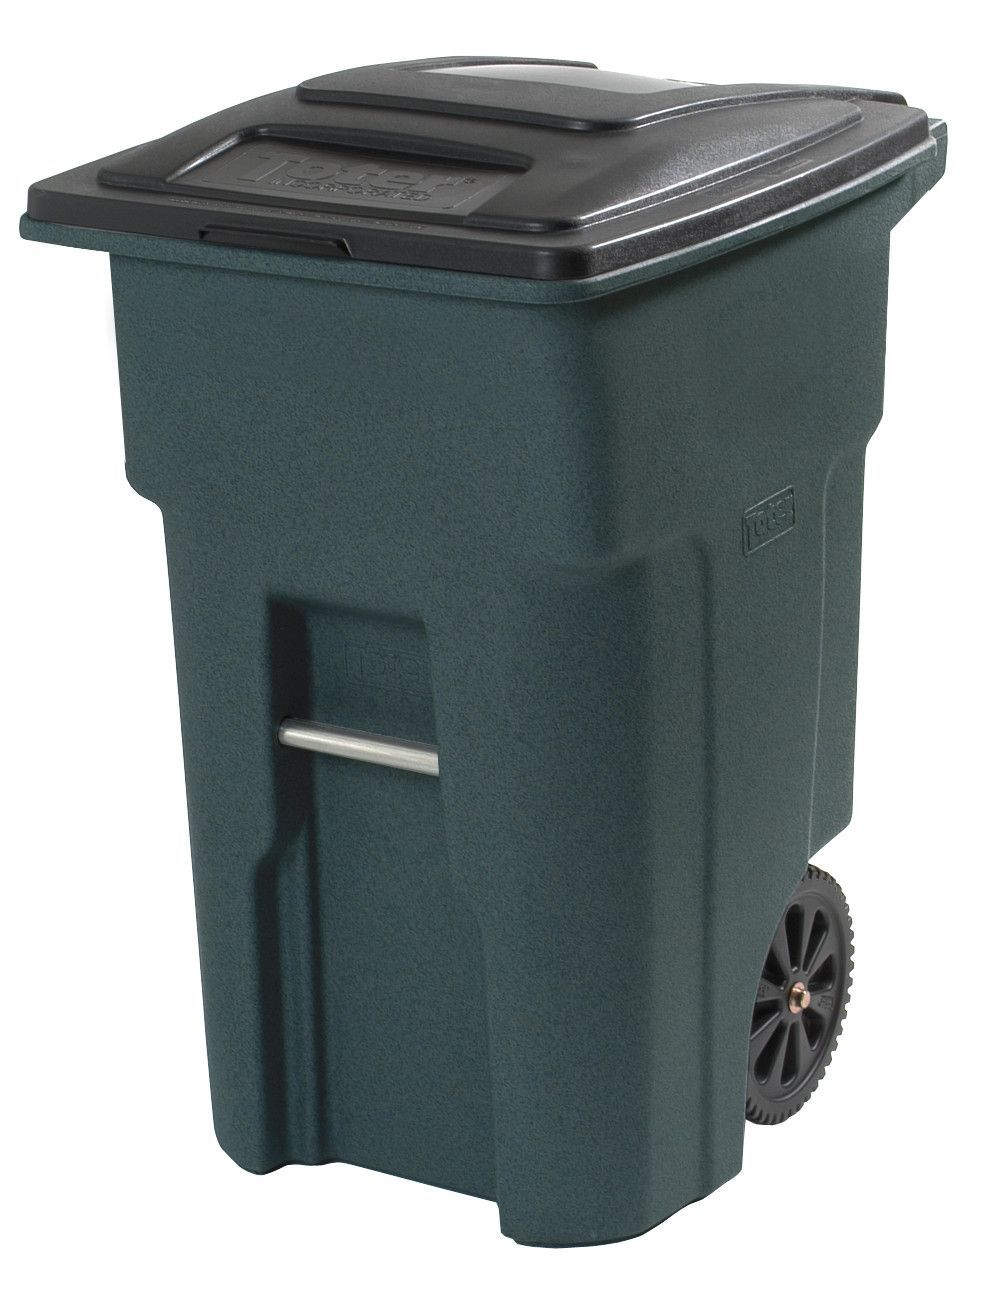 Residential Heavy Duty Two Wheeled Curbside Trash